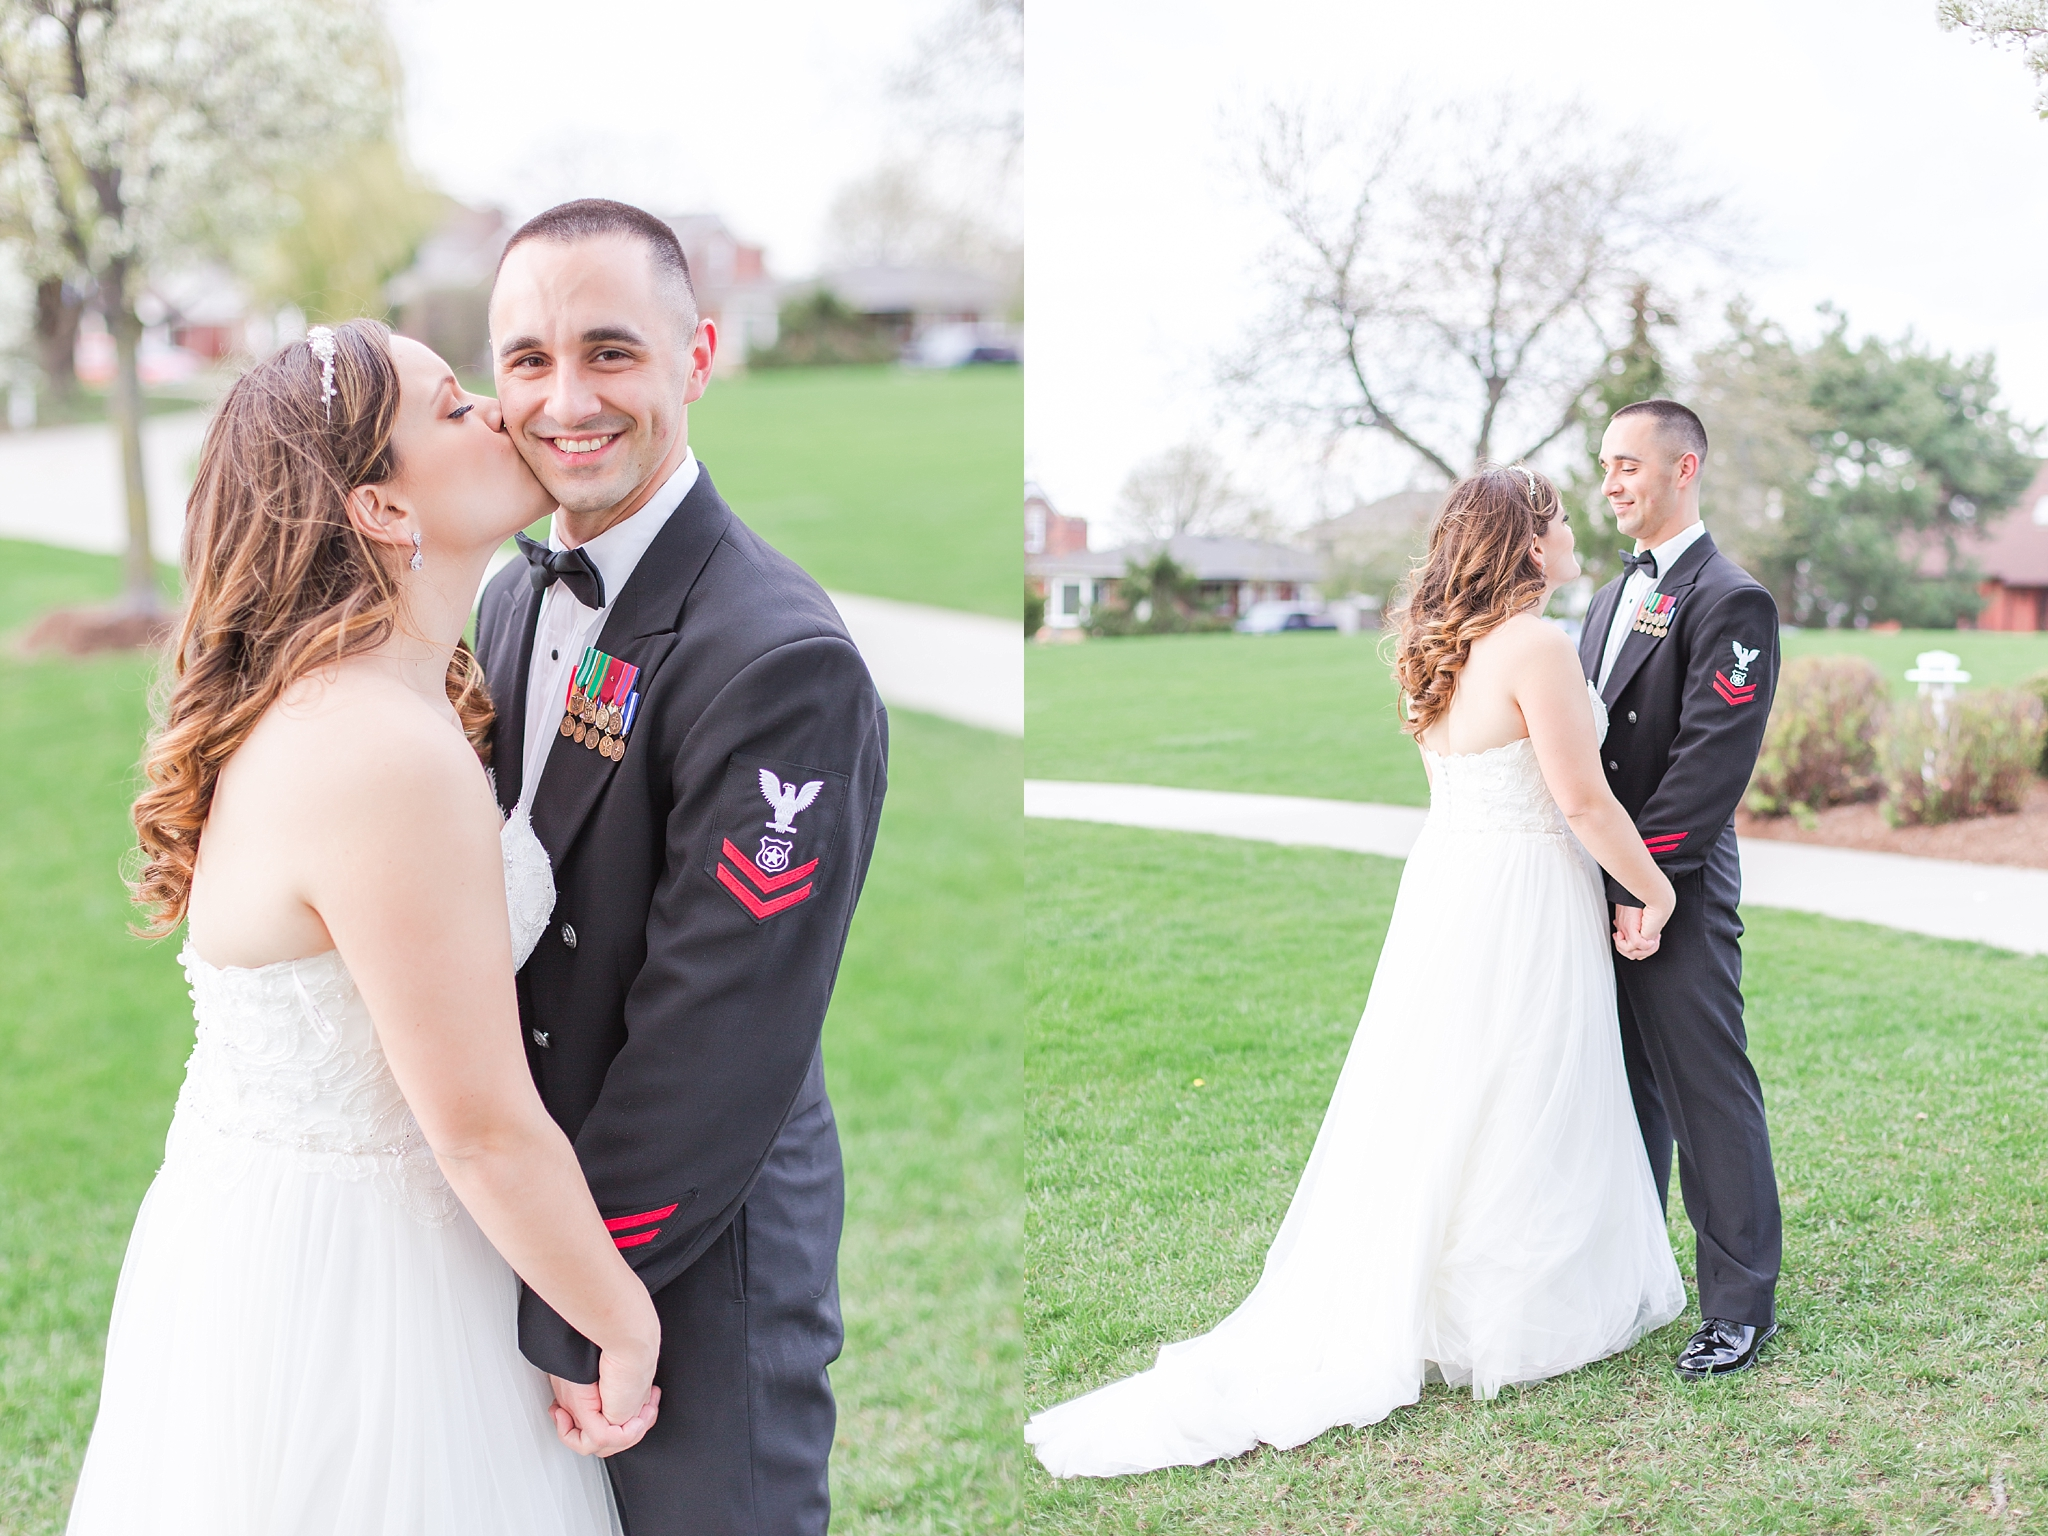 romantic-artful-candid-wedding-photos-in-st-clair-shores-at-the-white-house-wedding-chapel-by-courtney-carolyn-photography_0059.jpg